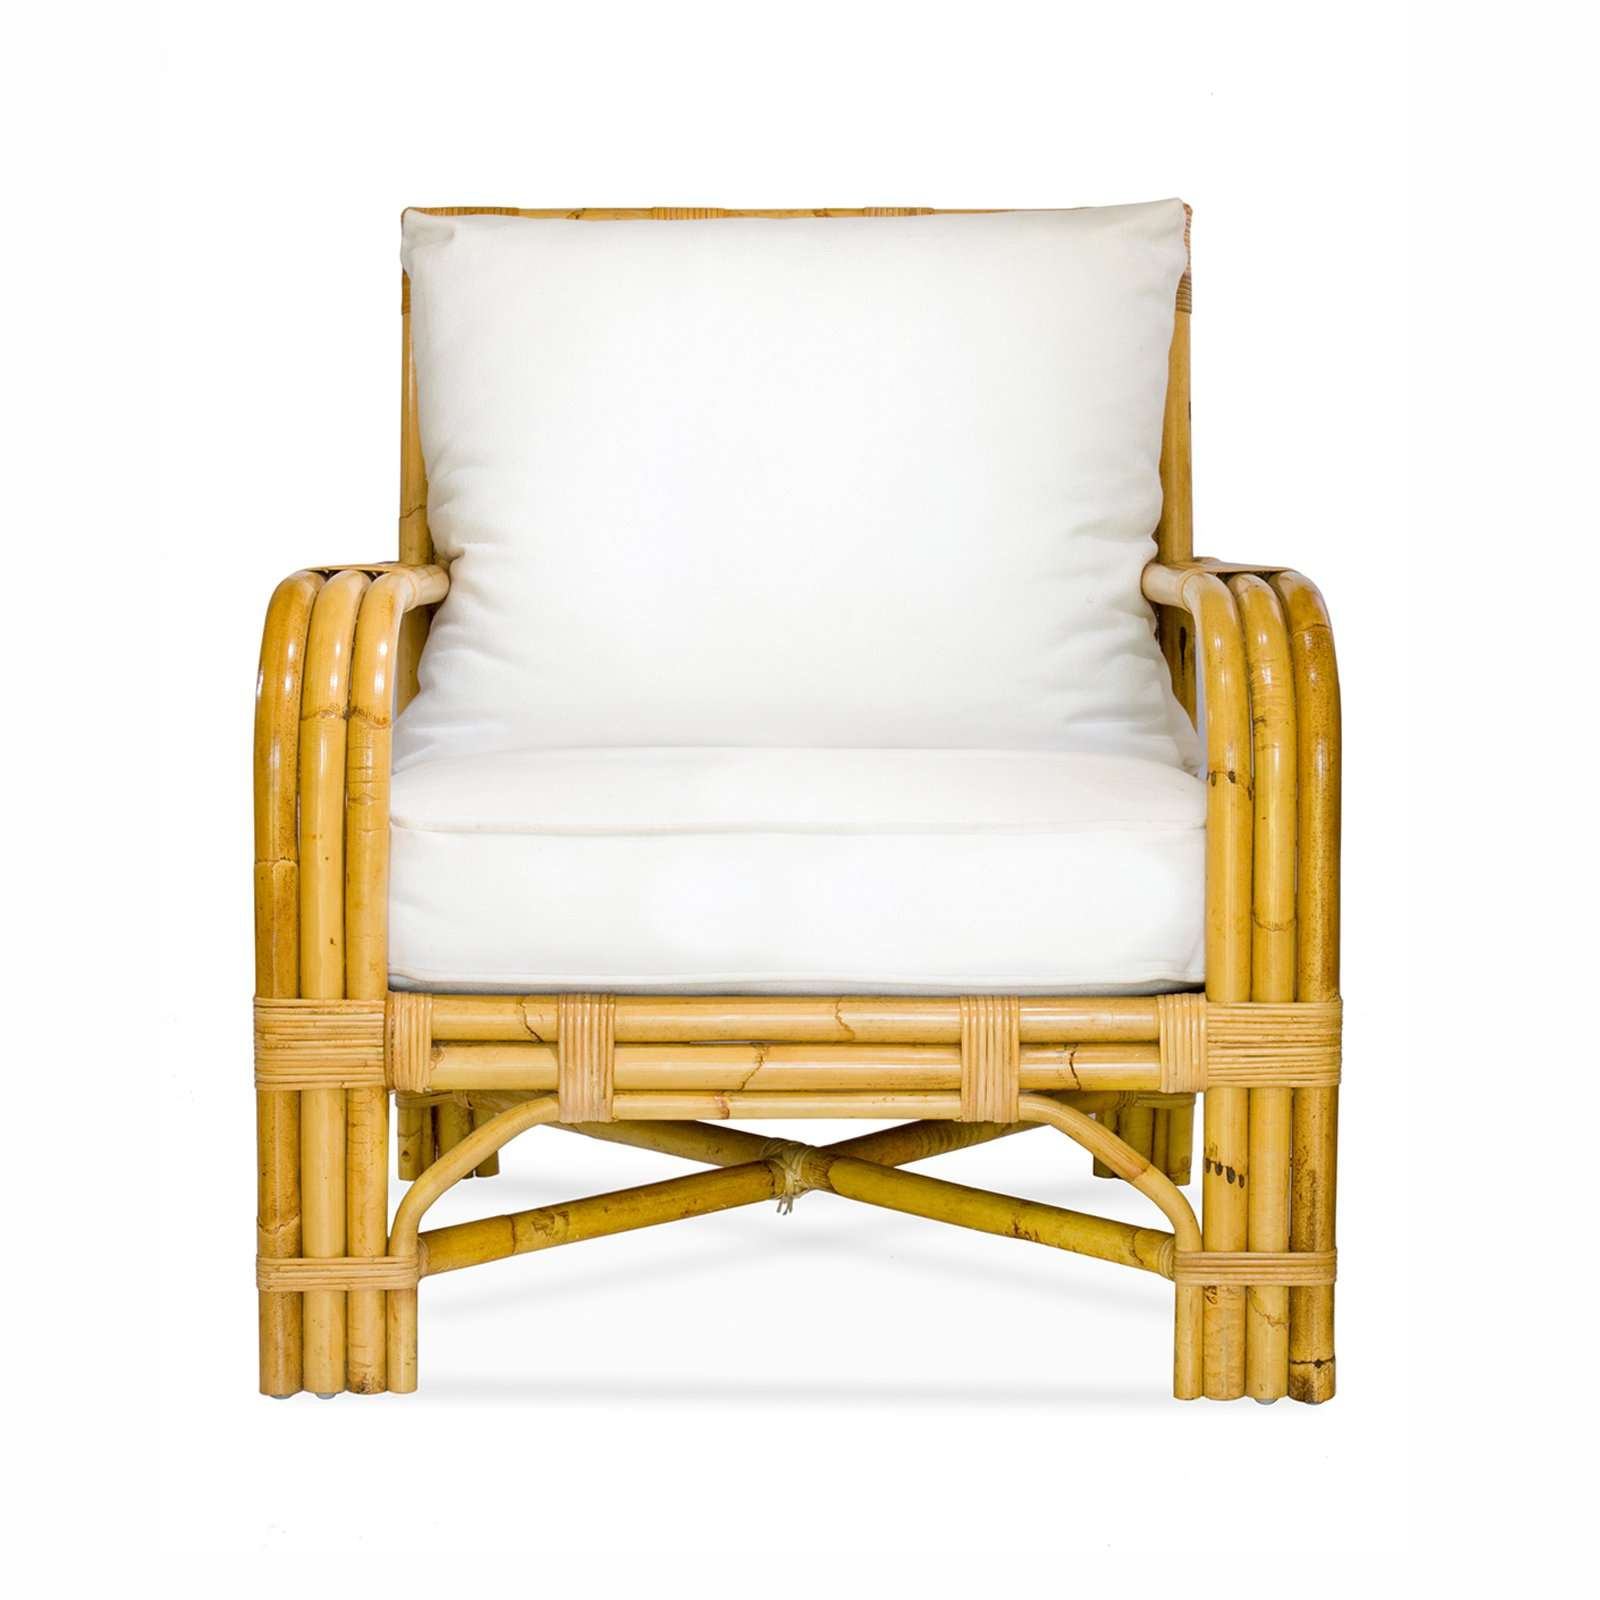 JAMAICA CLUB CHAIR 40 - STUART MEMBERY HOME COLLECTION